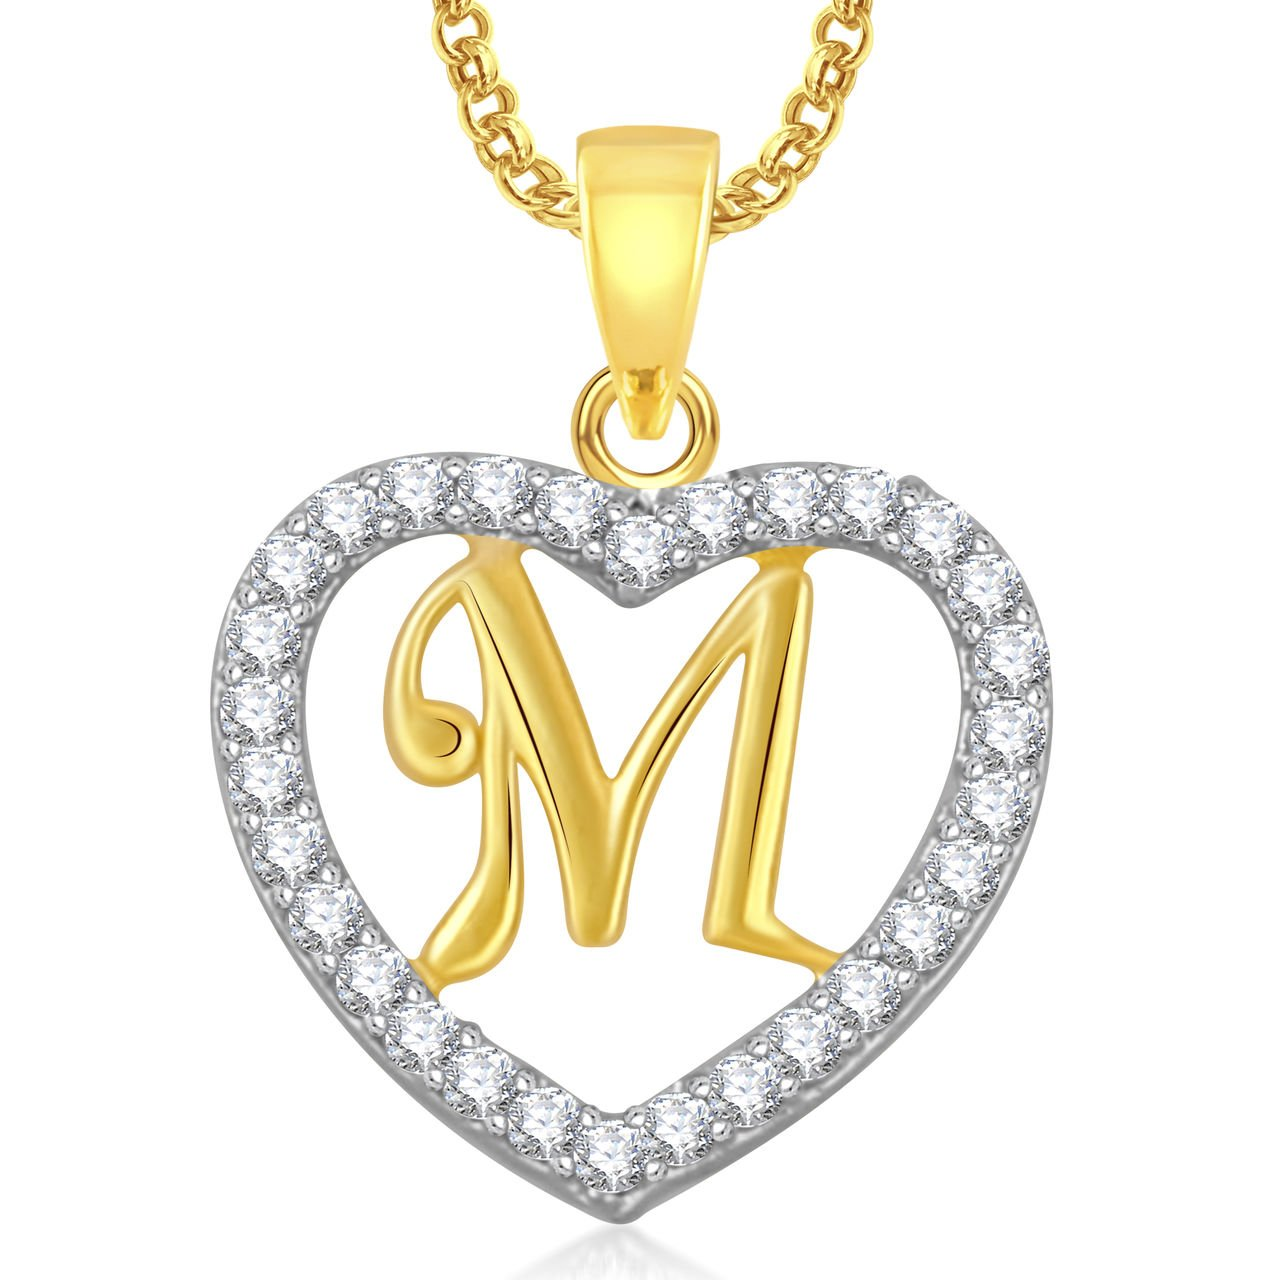 Buy Amaal Jewellery Valentine Gifts Gold American Diamond Heart Alphabet Letter M Necklace Pendant For Women Girls Girlfriend Boys Men With Chain Ps0406 At Amazon In Find your perfect free image or video to download and use for anything. amaal jewellery valentine gifts gold american diamond heart alphabet letter m necklace pendant for women girls girlfriend boys men with chain ps0406